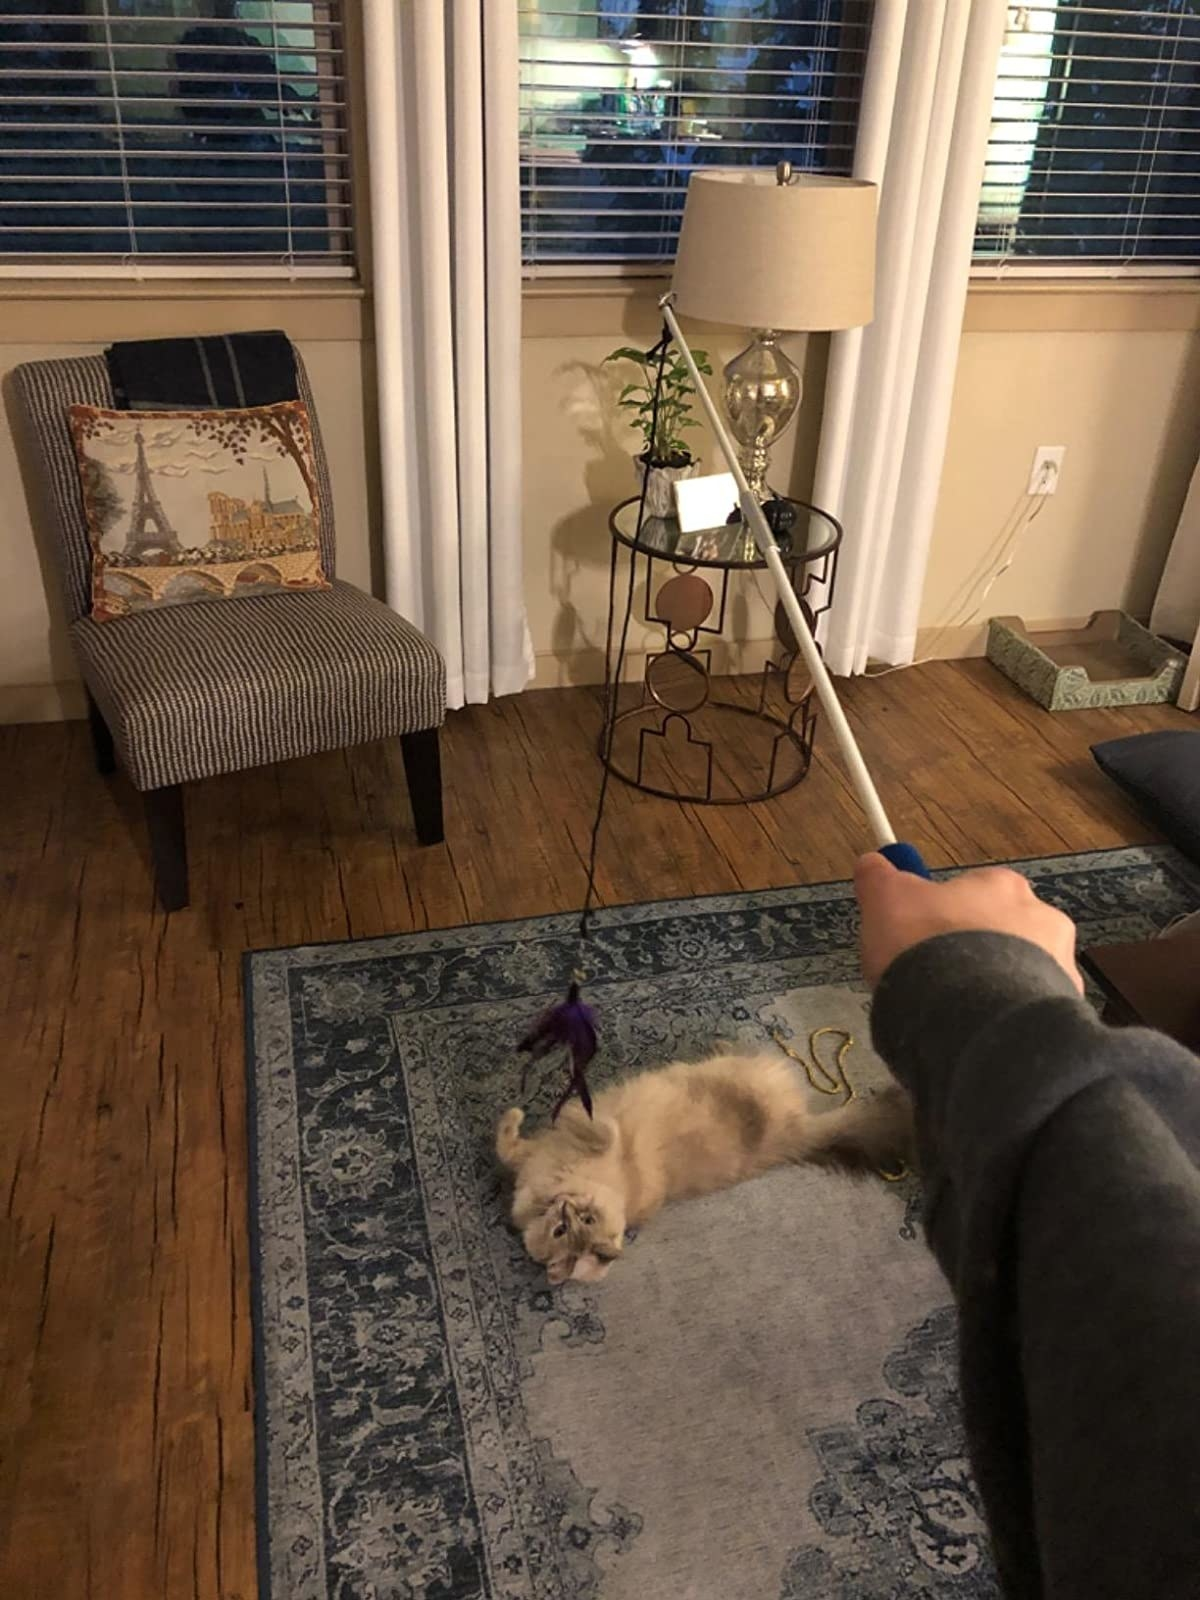 Reviewer's photo of their cat playing with the toy